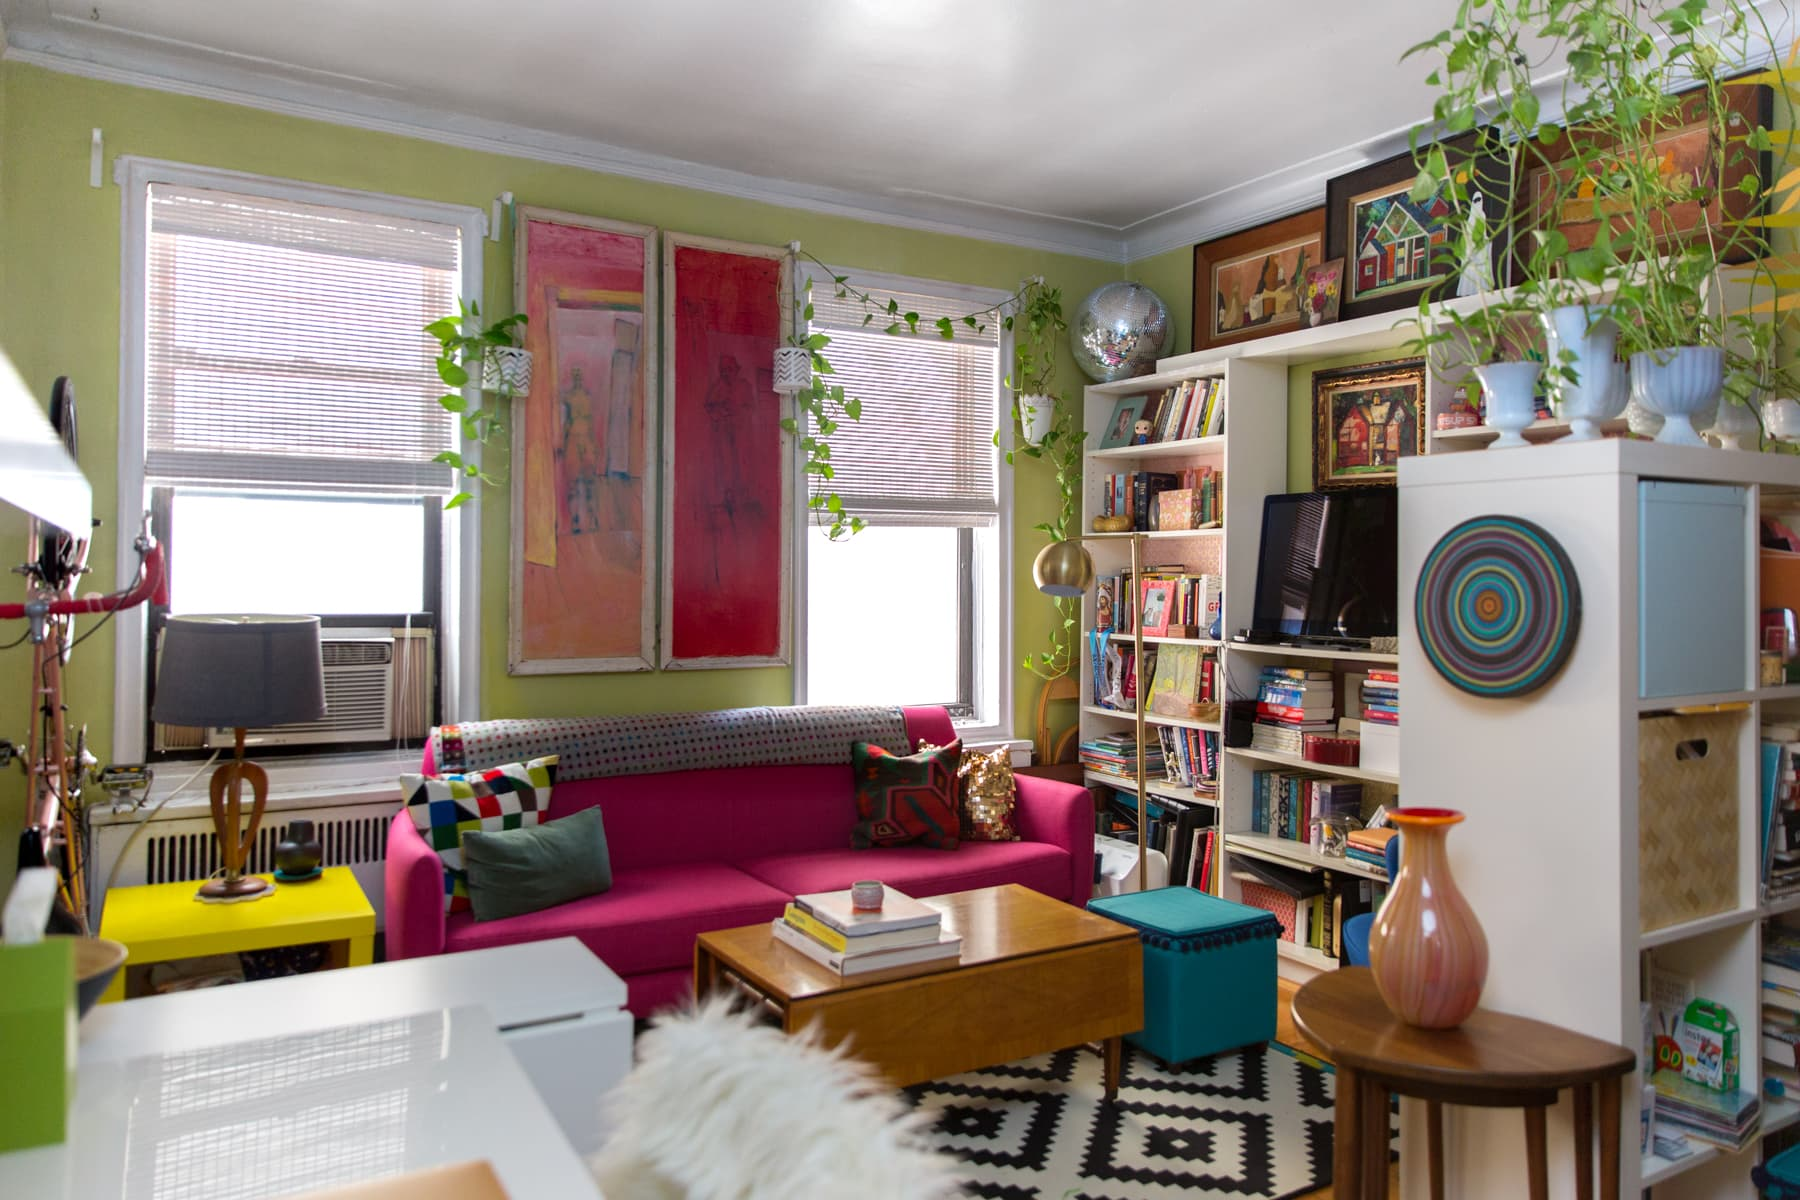 New York Studio Apartment Tour A Small Colorful Home Apartment Therapy